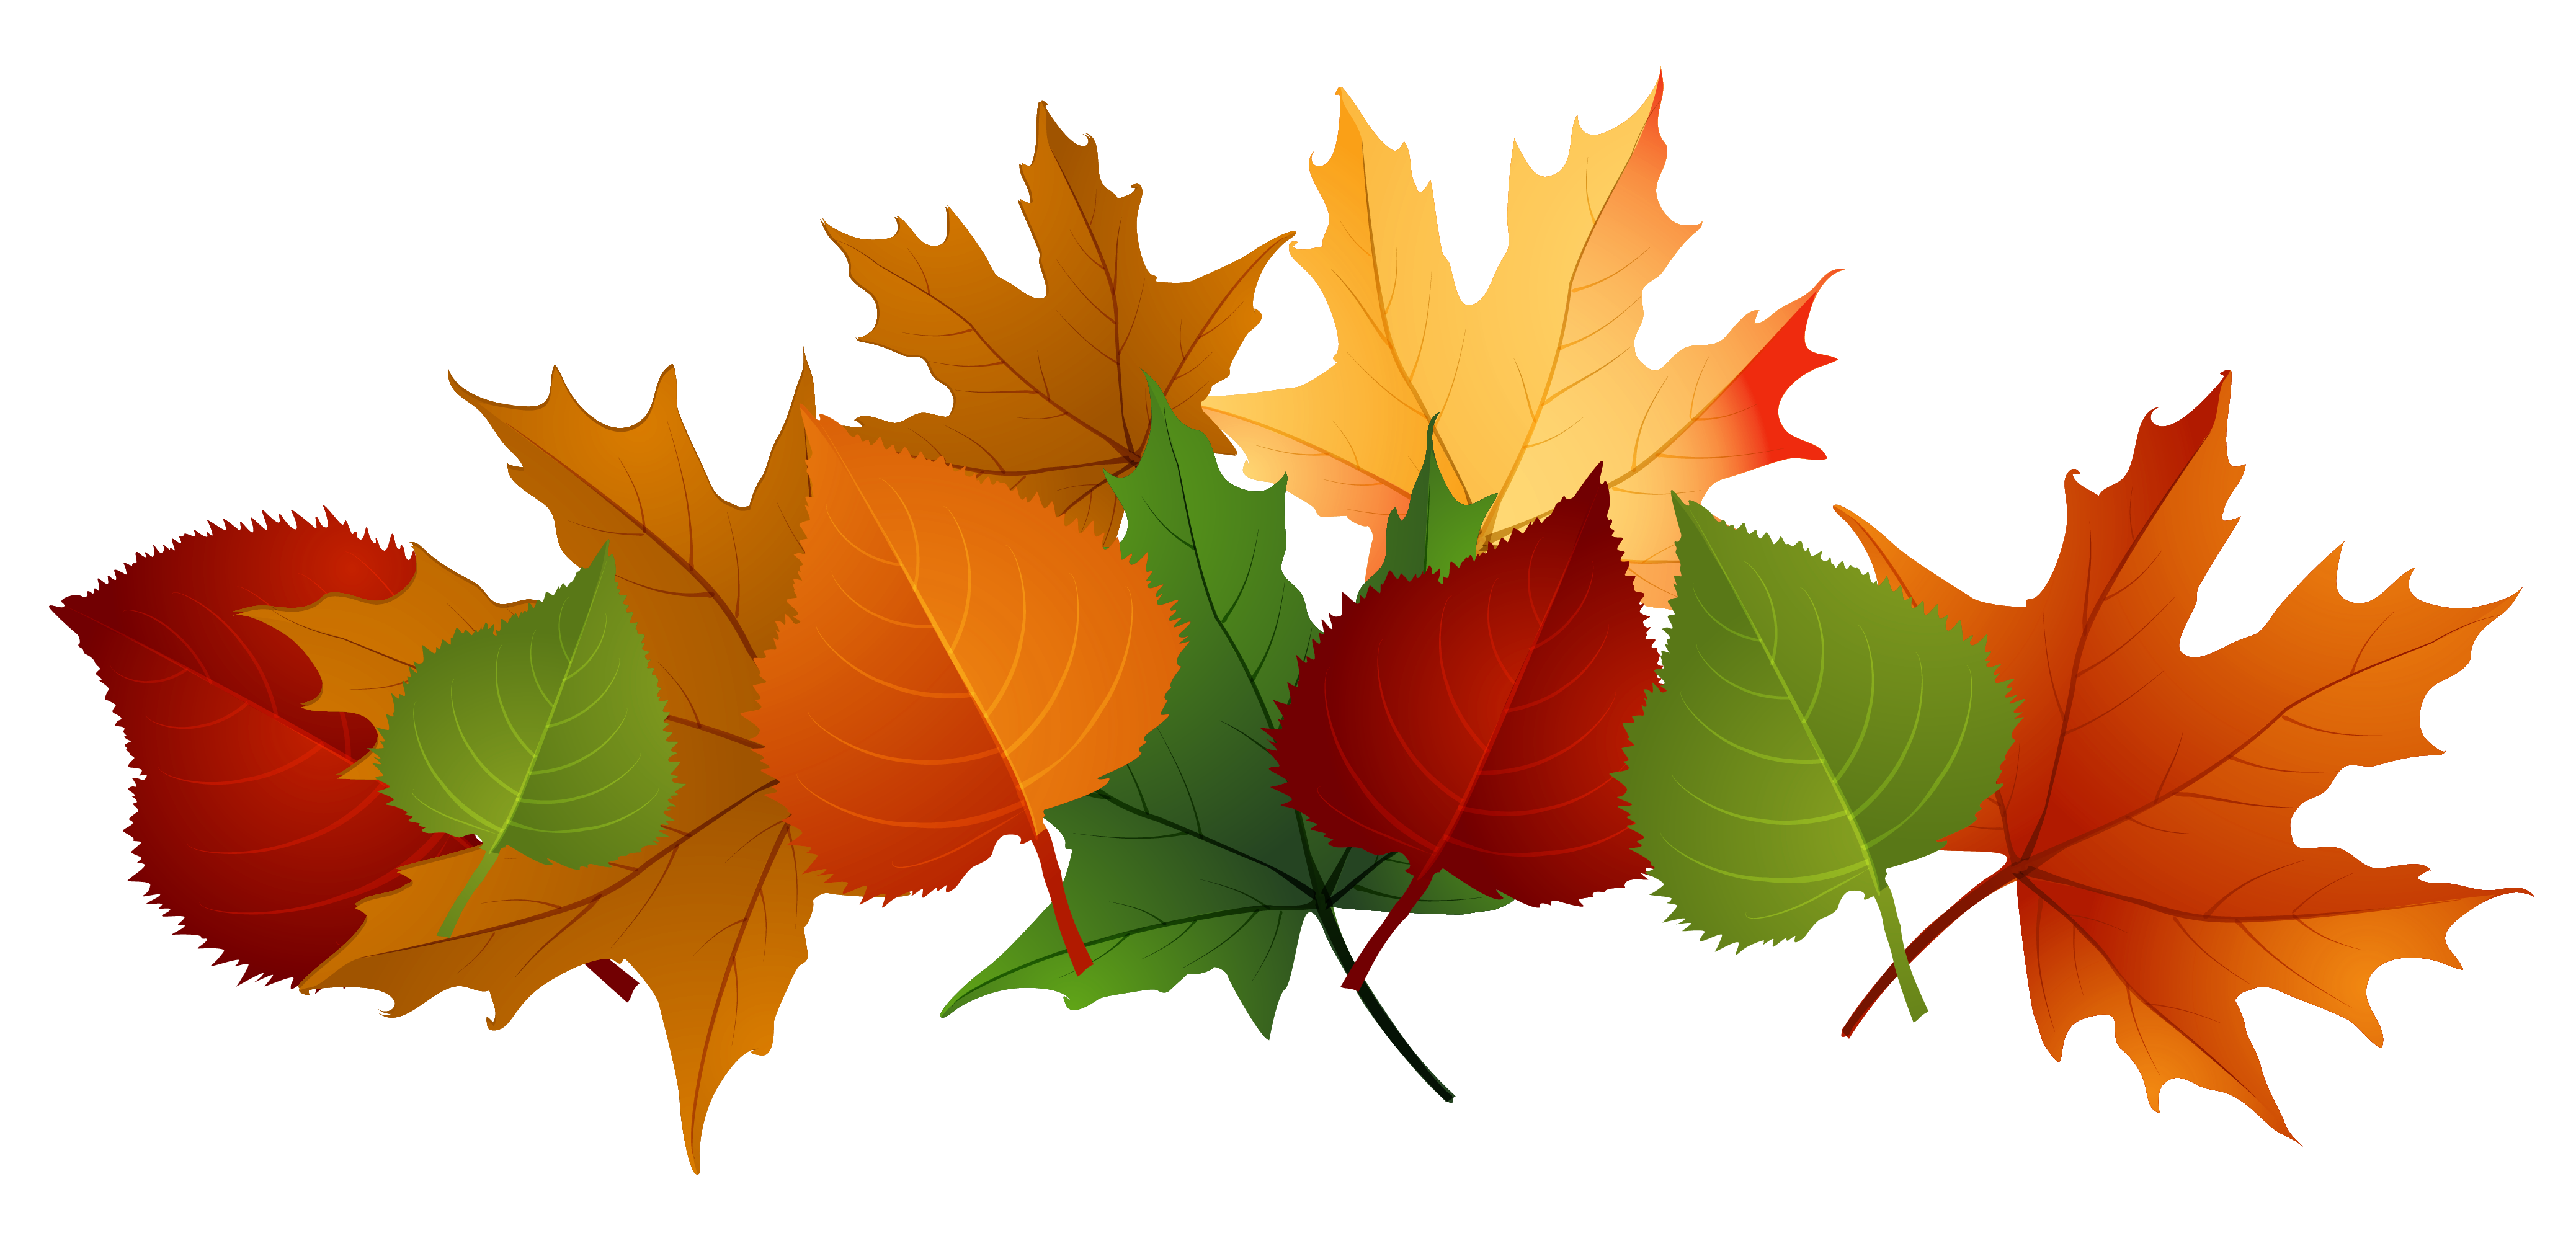 Fall leaves fall clip art . - Free Clip Art Fall Leaves